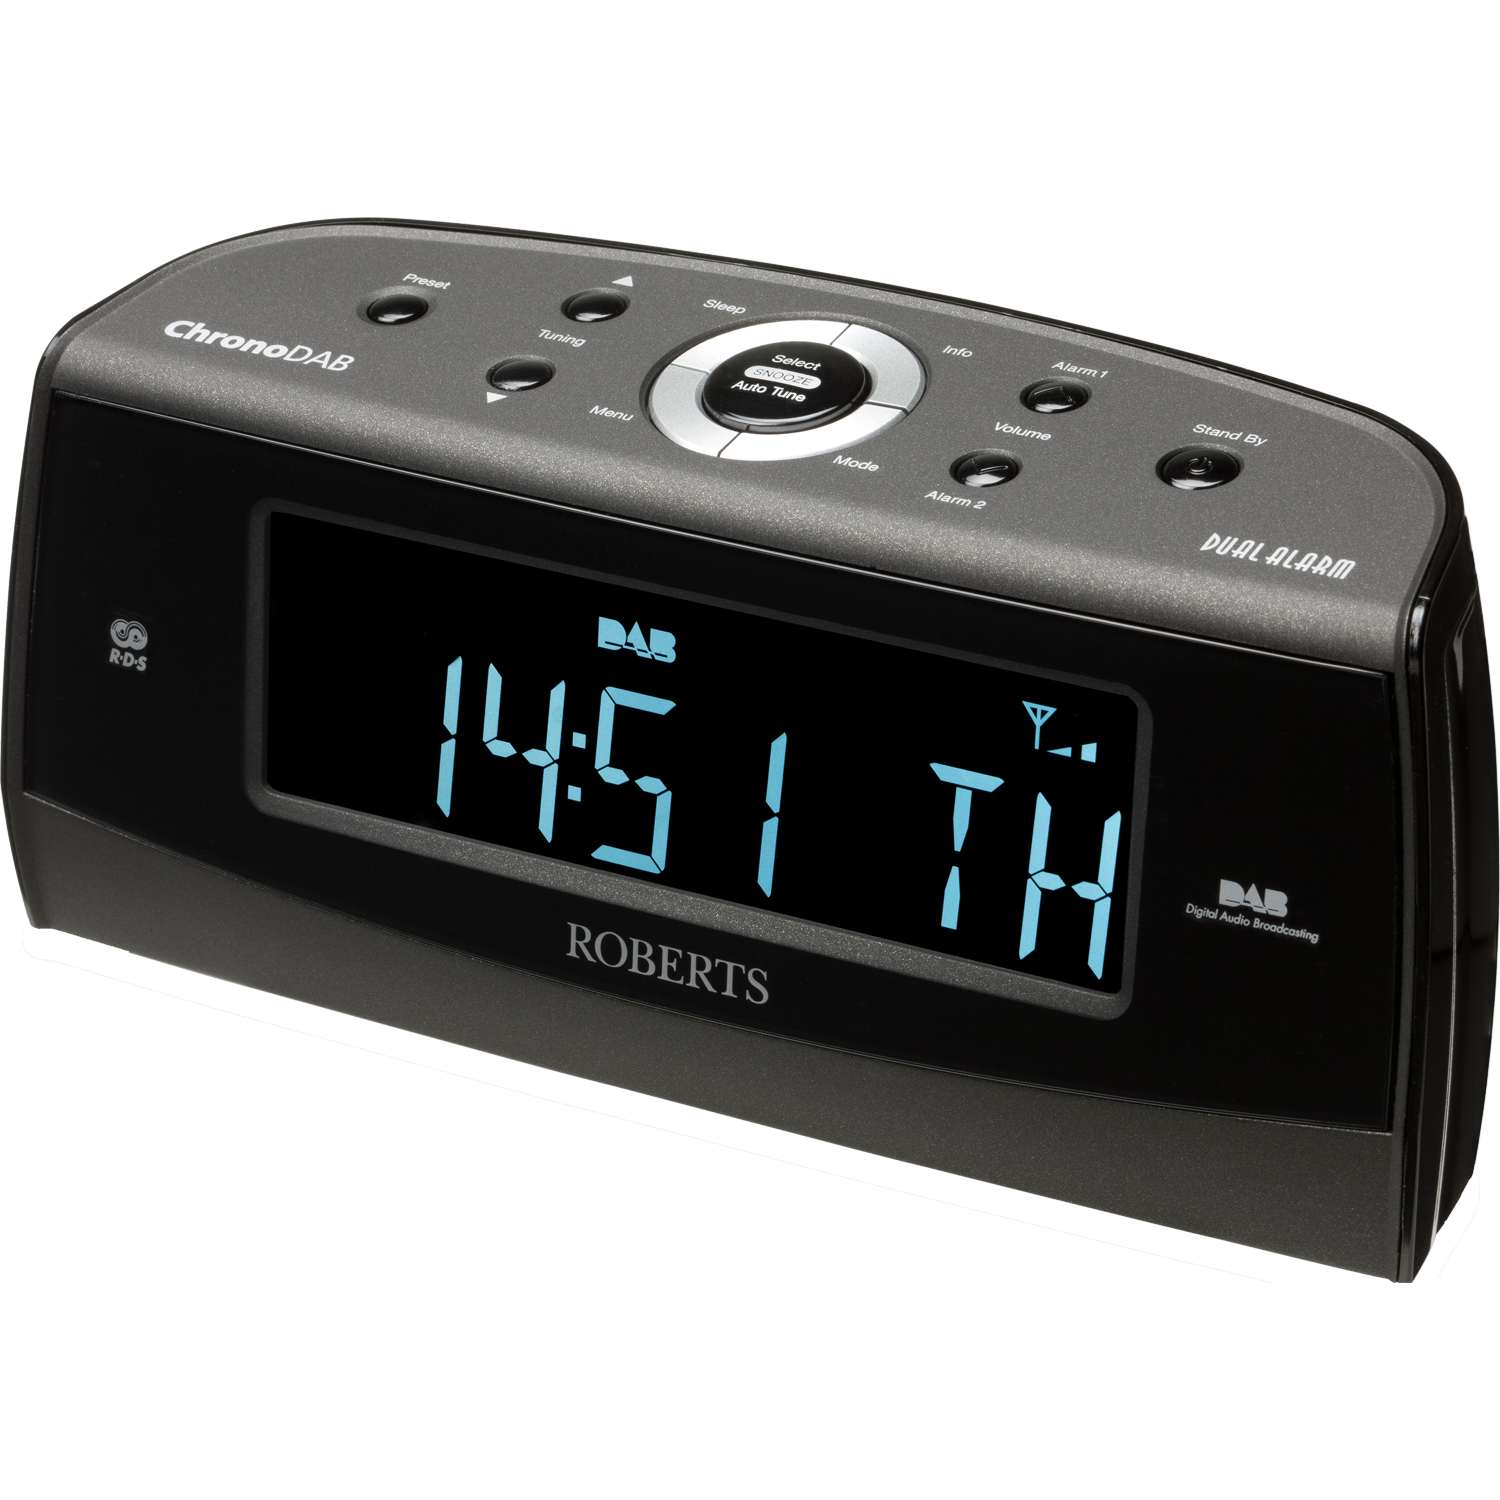 dab radio alarm clock with headphone socket goodmans portable digital fm radio in copper. Black Bedroom Furniture Sets. Home Design Ideas